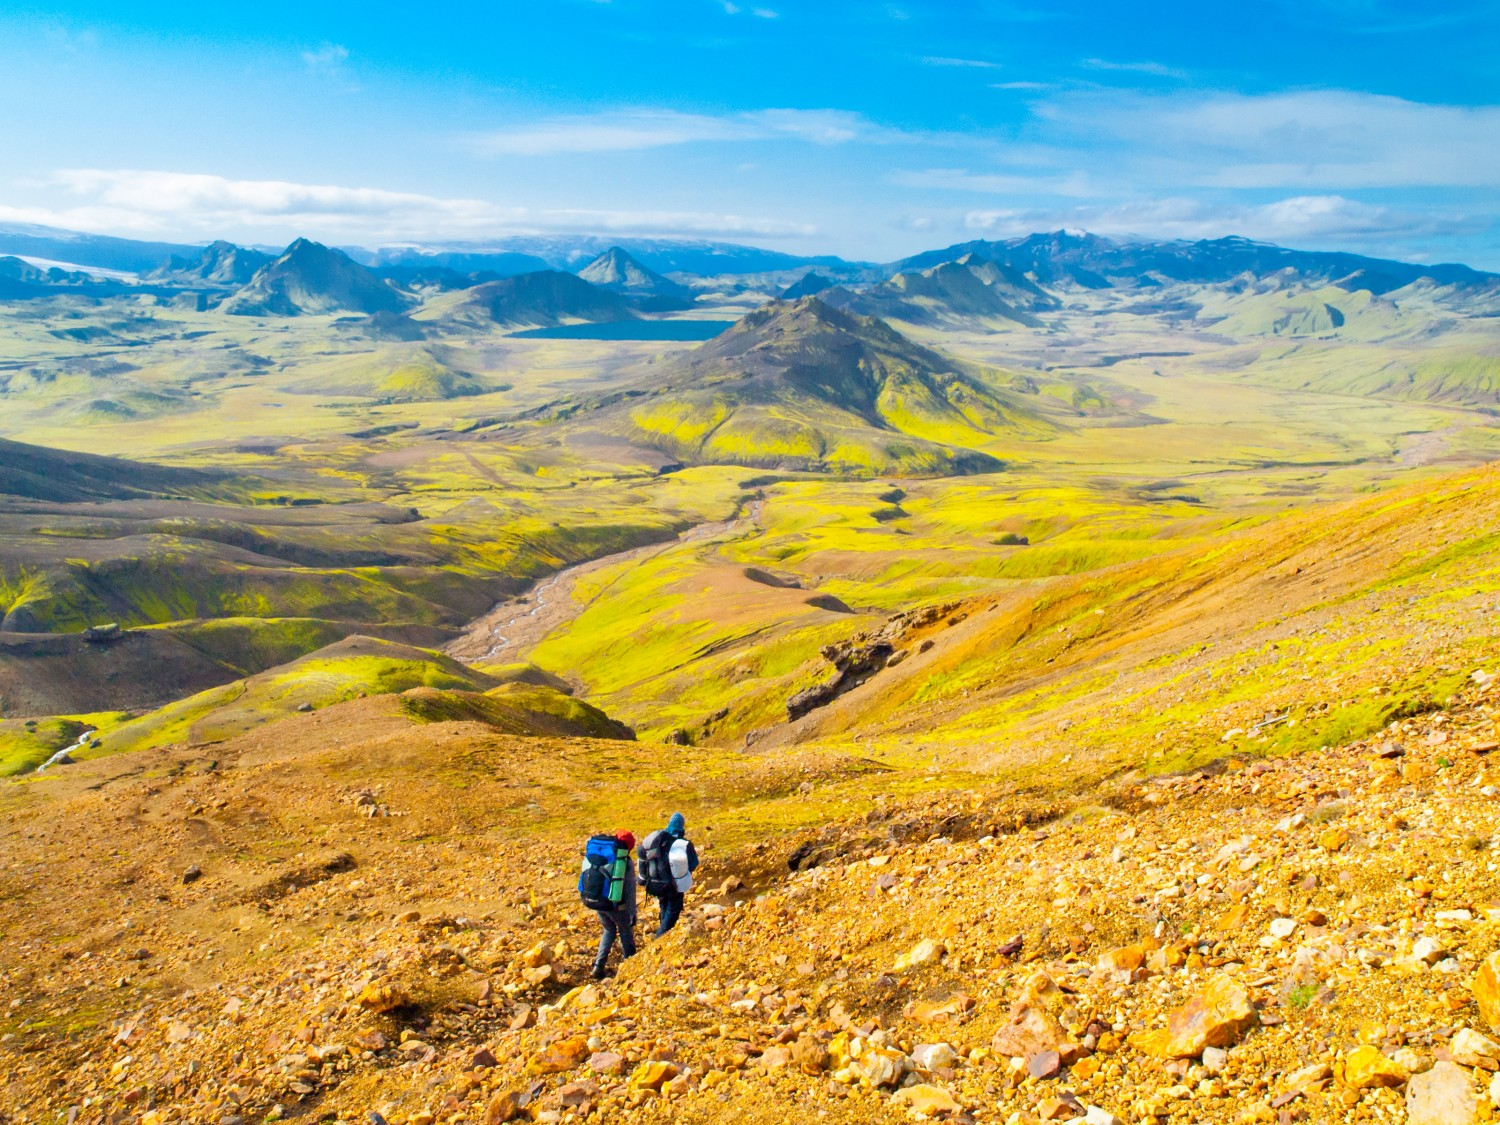 Laugavegur trek, Iceland - One of Europe's best hikes. Read more.